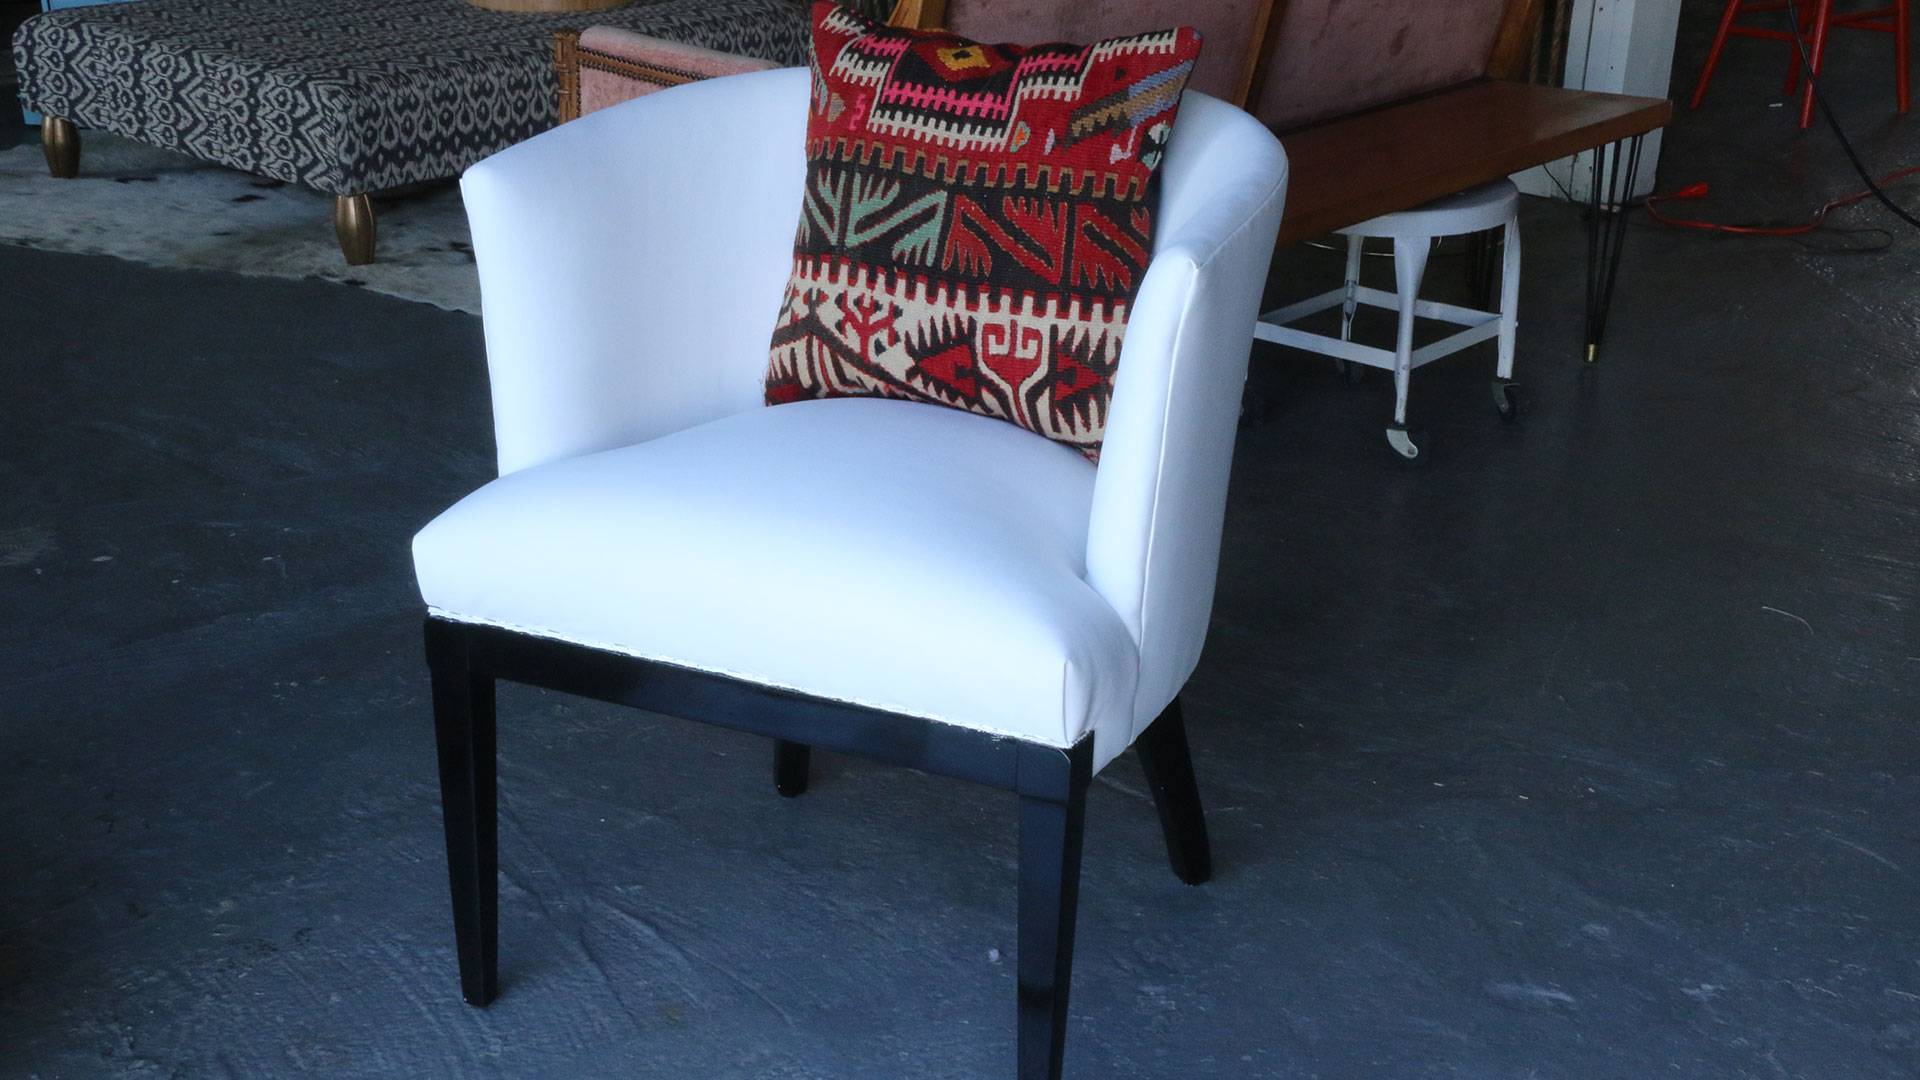 Reupholstered Modern Chair